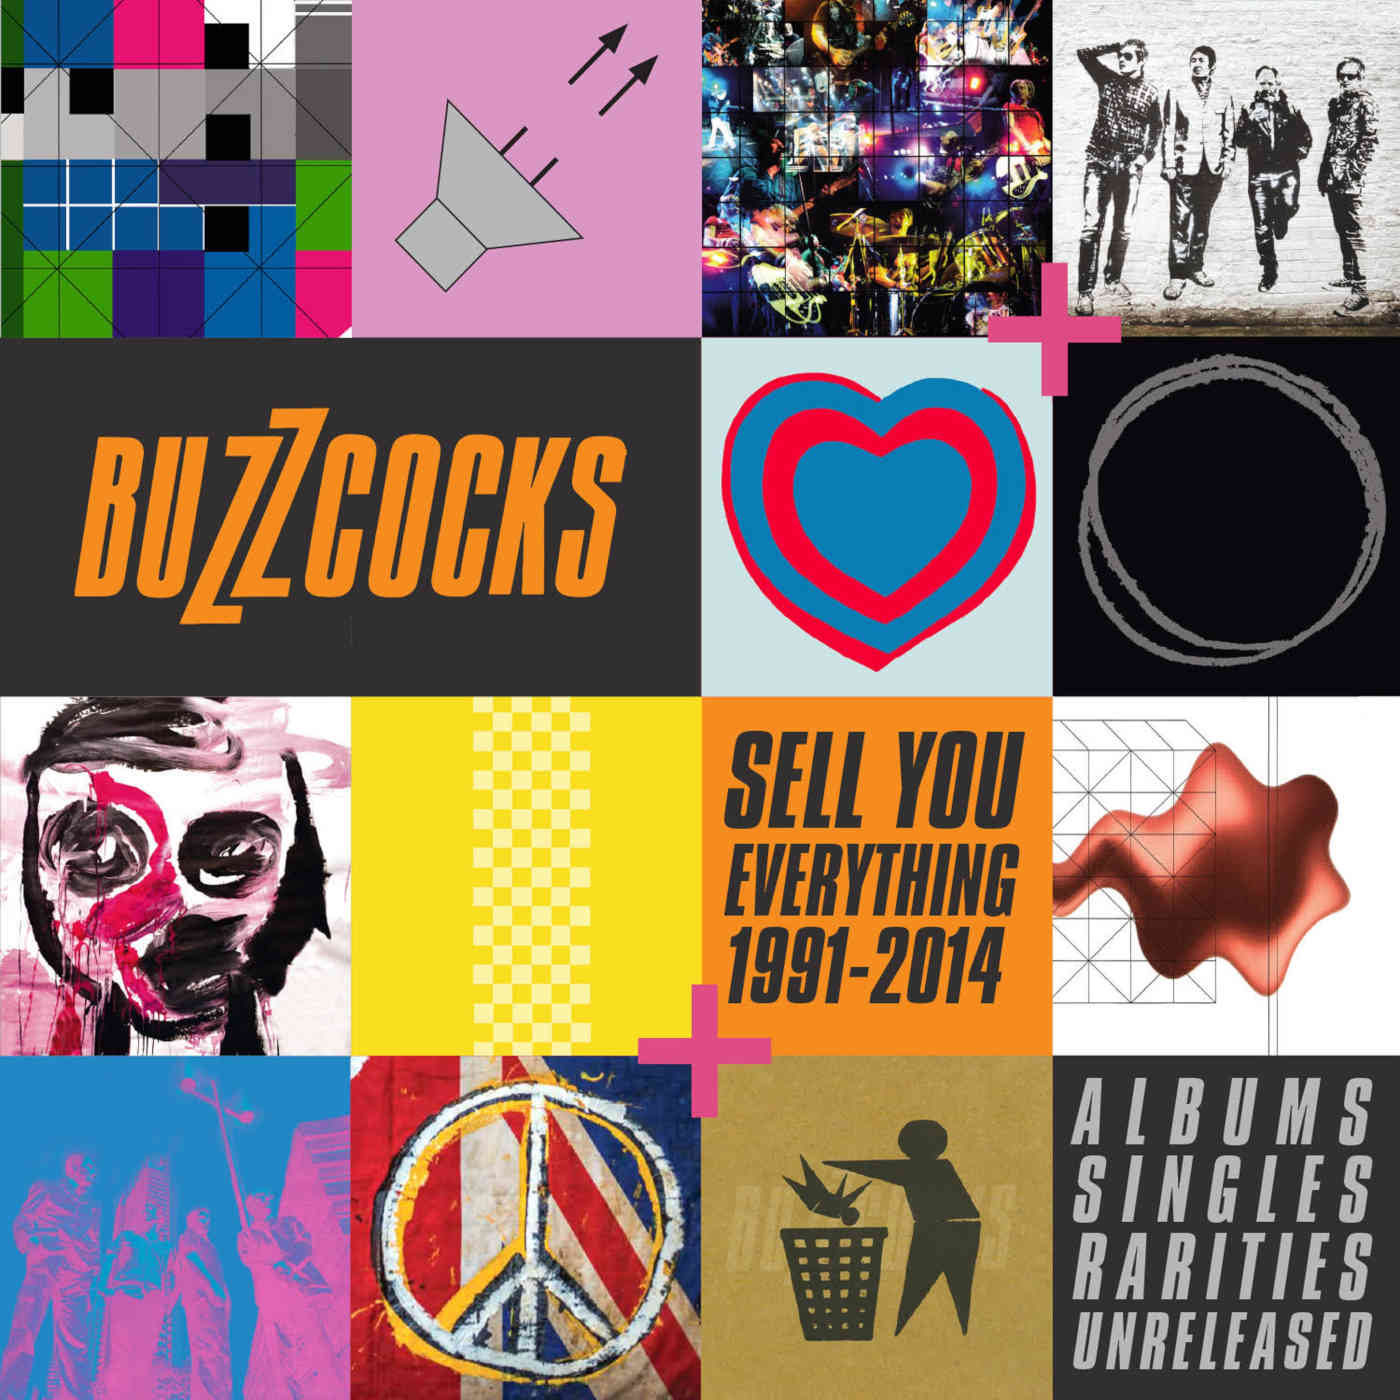 News – Buzzcocks: Sell You Everything (1991-2014) – Deluxe box set